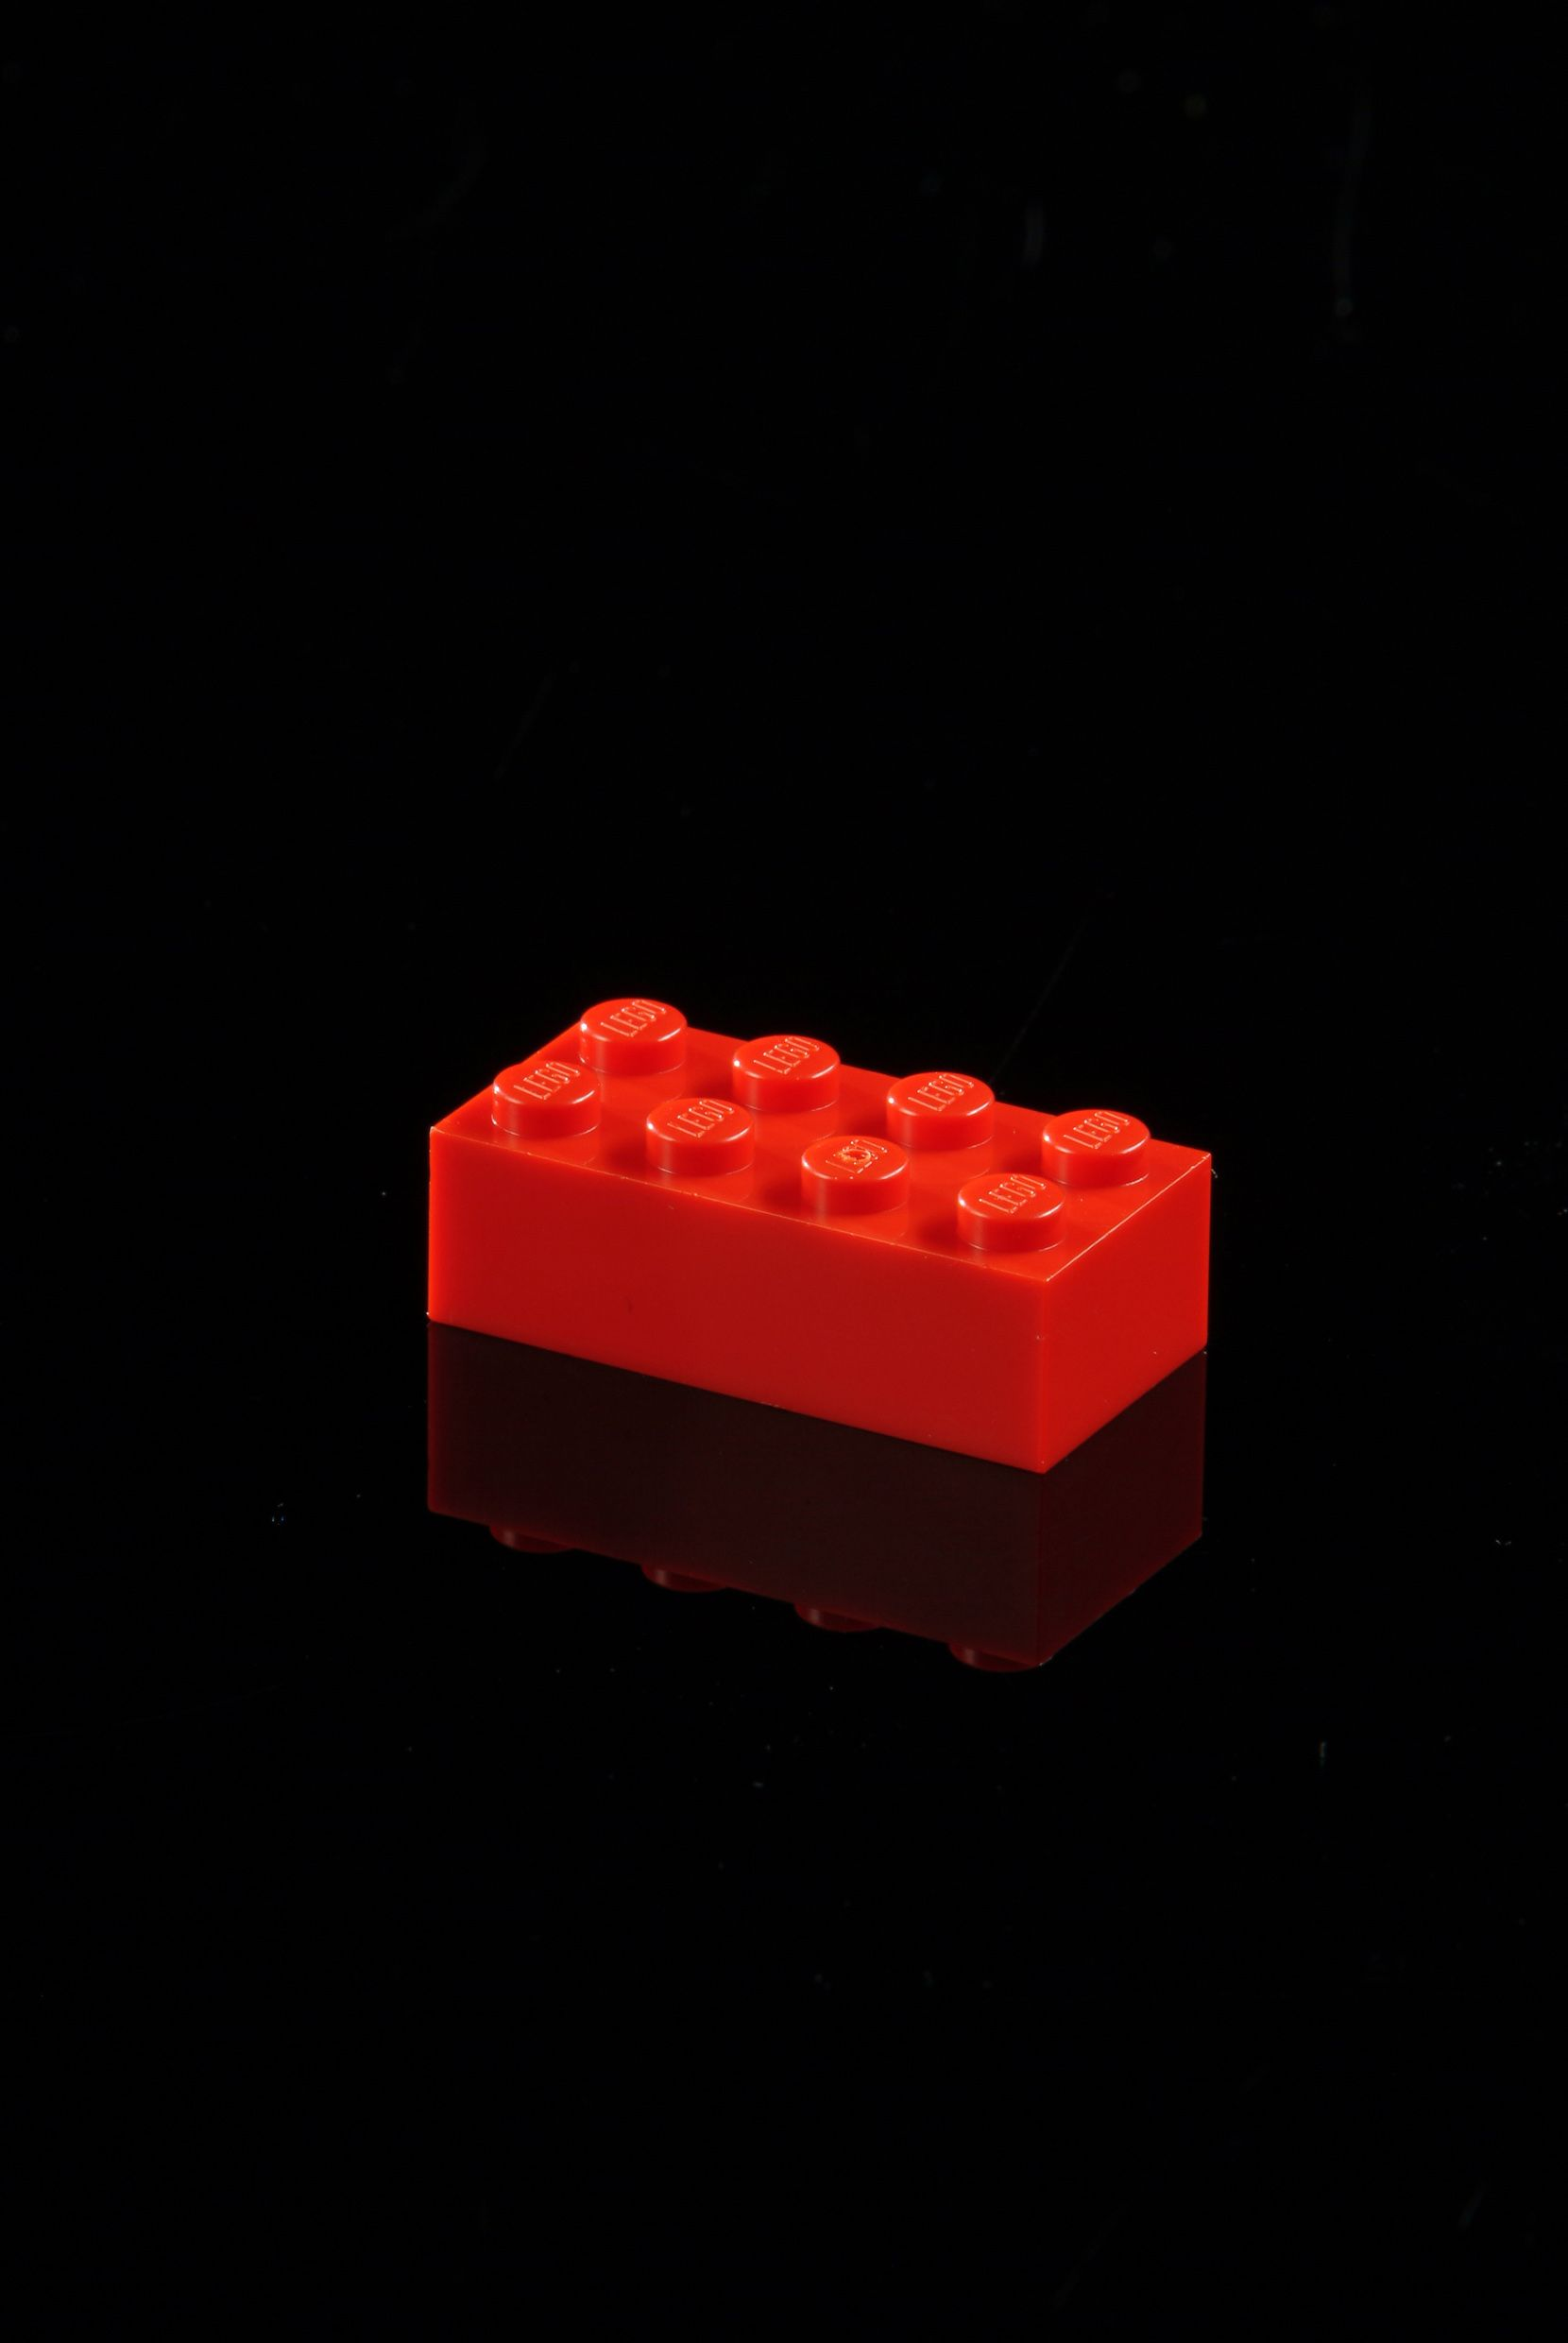 Almost Everything About Lego Lego Paradise Lego Red Vintage Toys